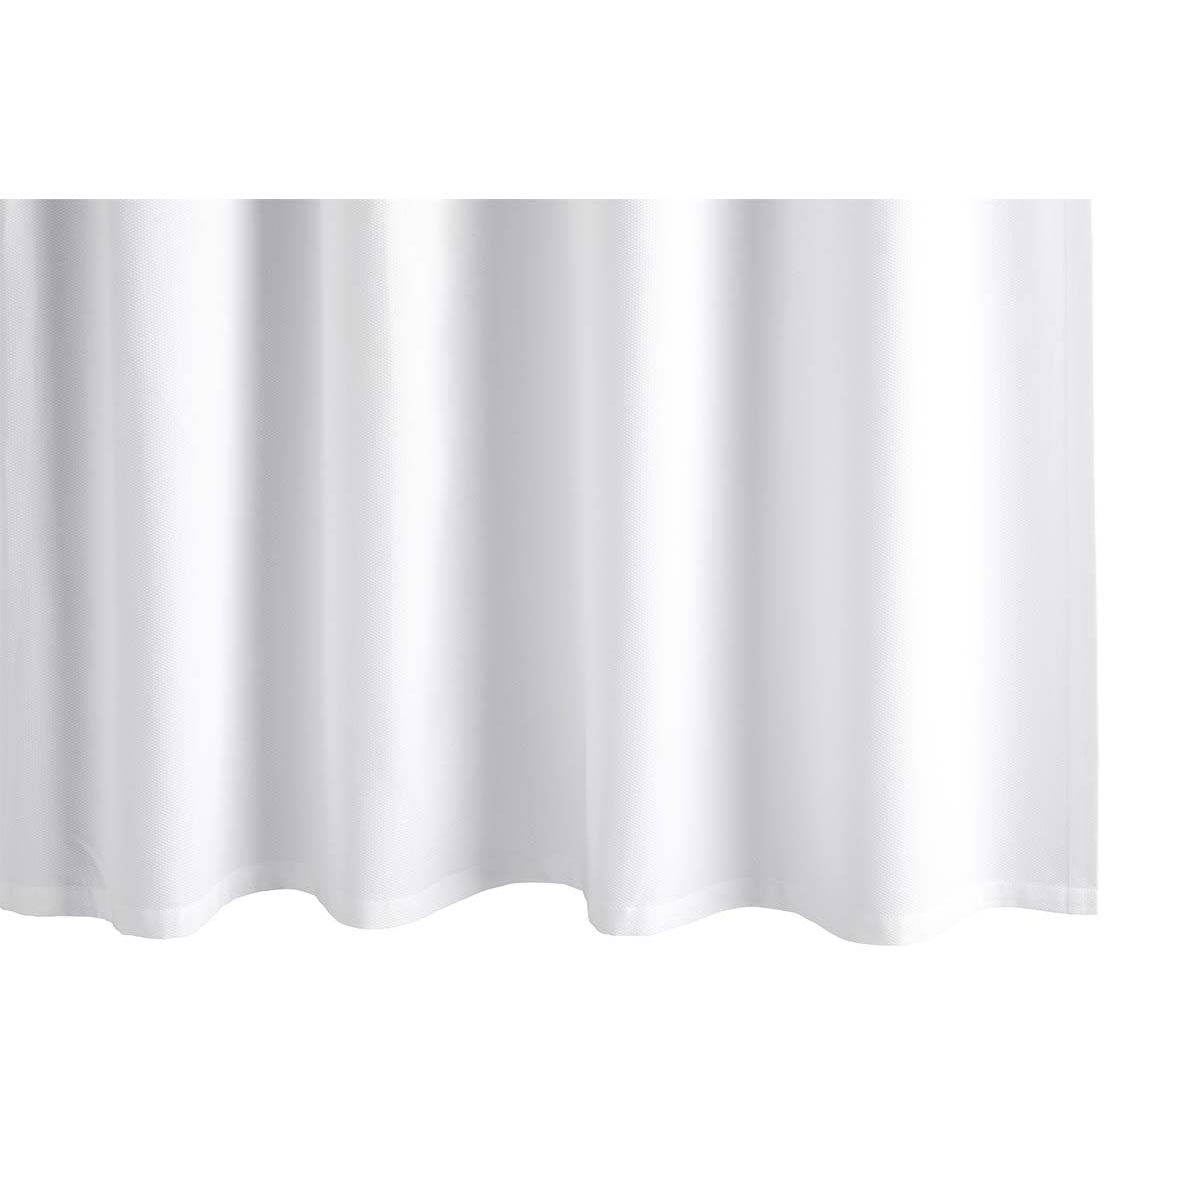 curtains curtain shower bath today shipping bedding overstock cotton product seersucker white free waffle